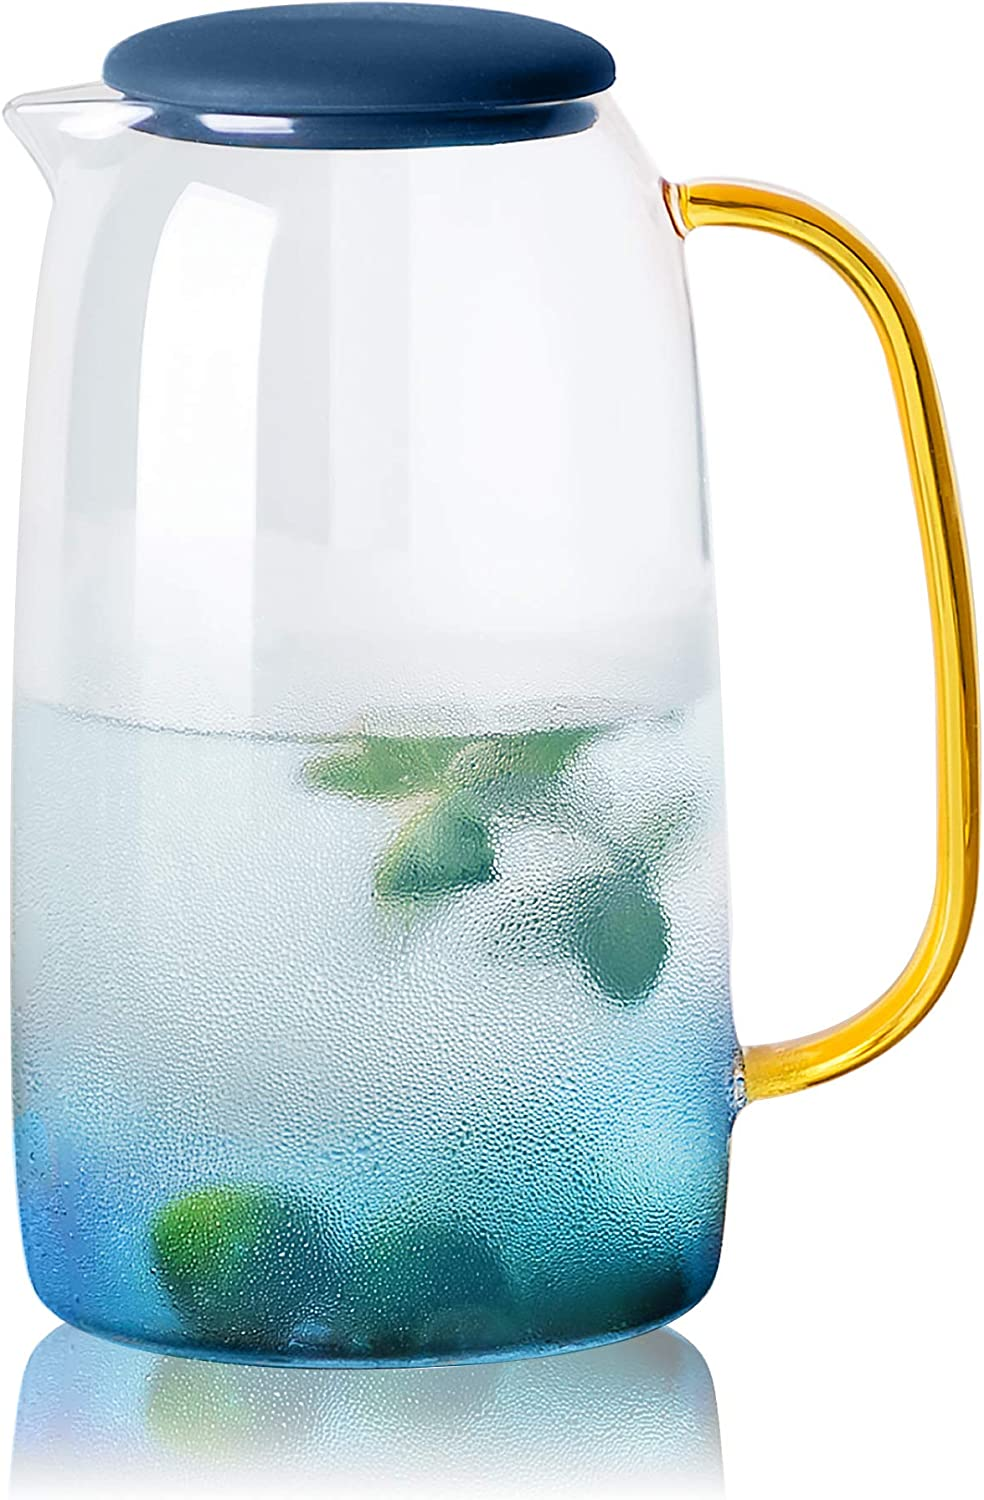 HIEEY Glass Water Pitcher,Lemonade Pitcher,Tea pitcher,Borosilicate Glass Carafe,for Hot and Cold Water, Drinks, Wine, Tea, Coffee,Ice Lemon Tea and Juice Beverage,1.6 quart/52 oz,Clear